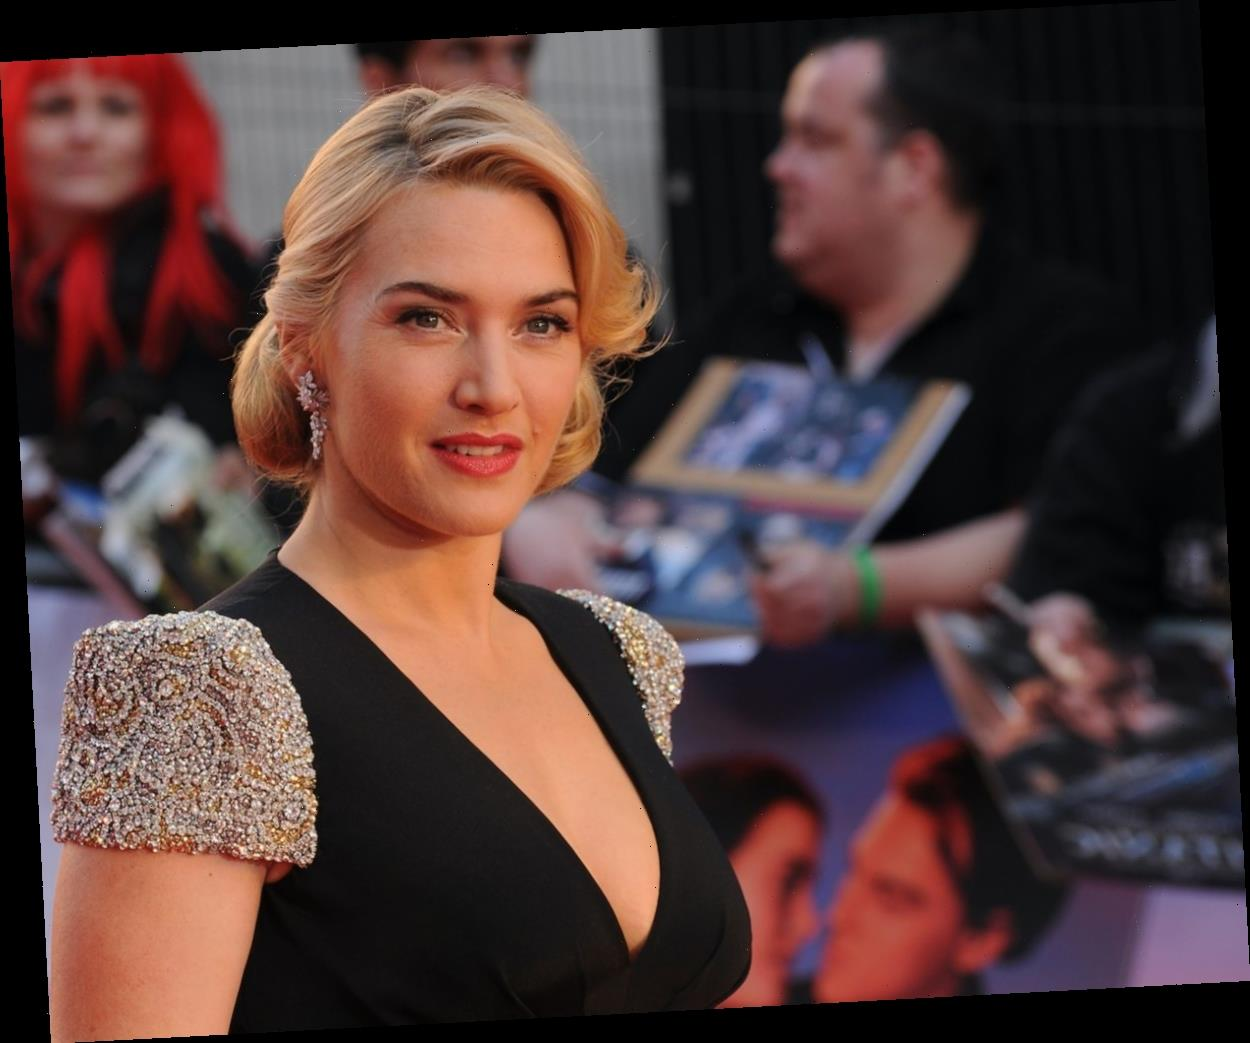 Kate Winslet Reveals Her Favorite Movie Role That She Has Ever Played